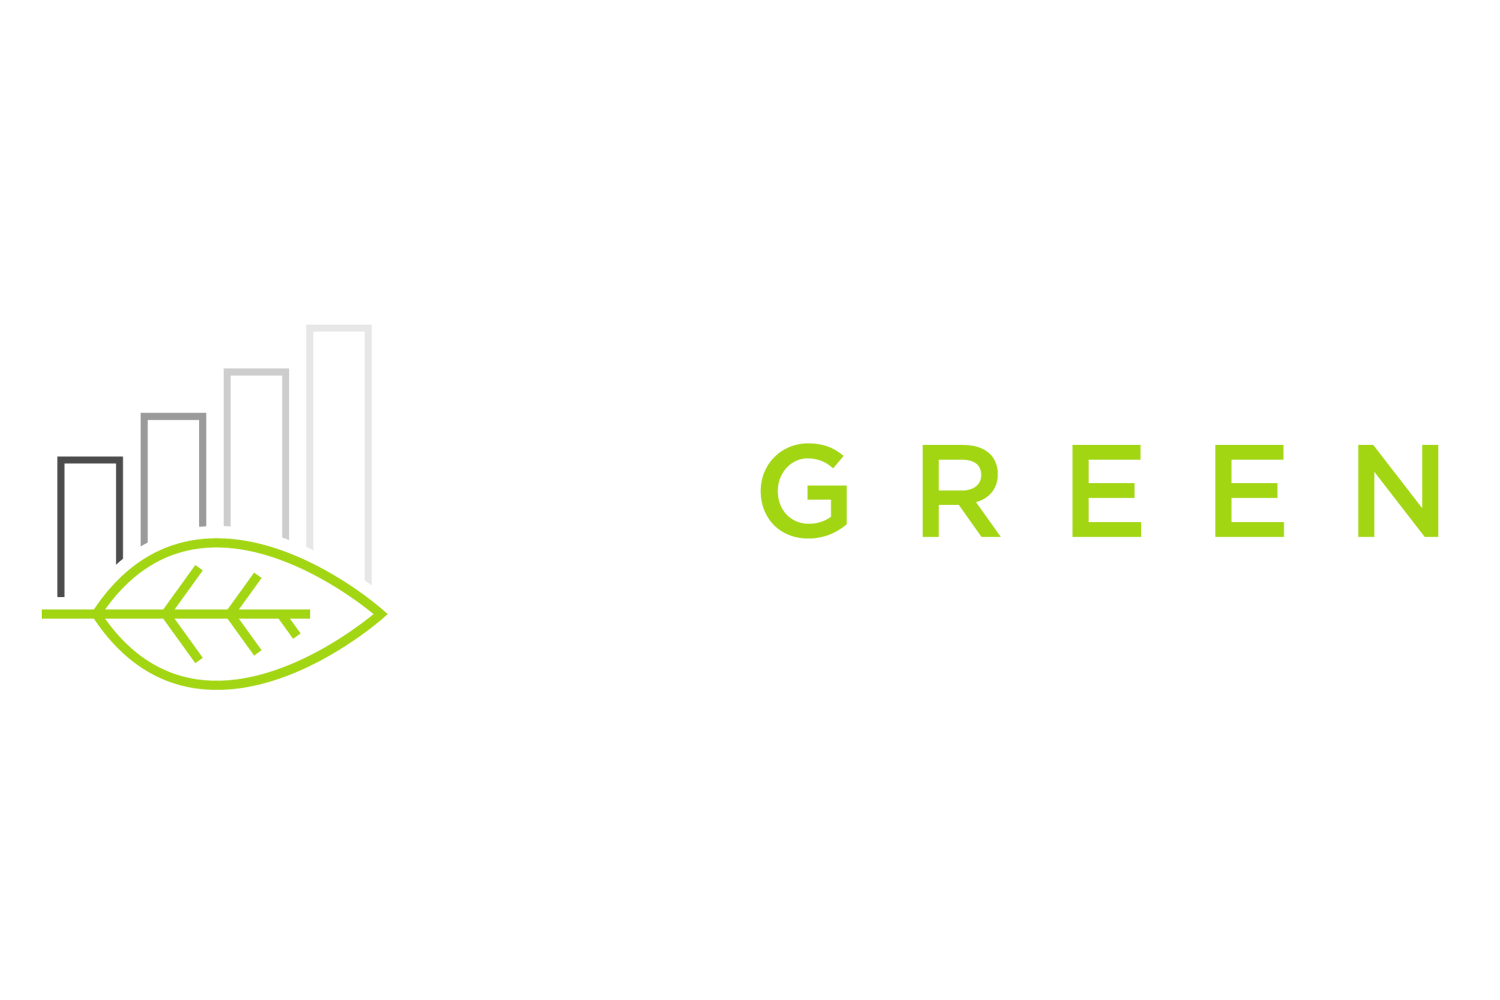 mygreenfinance.de